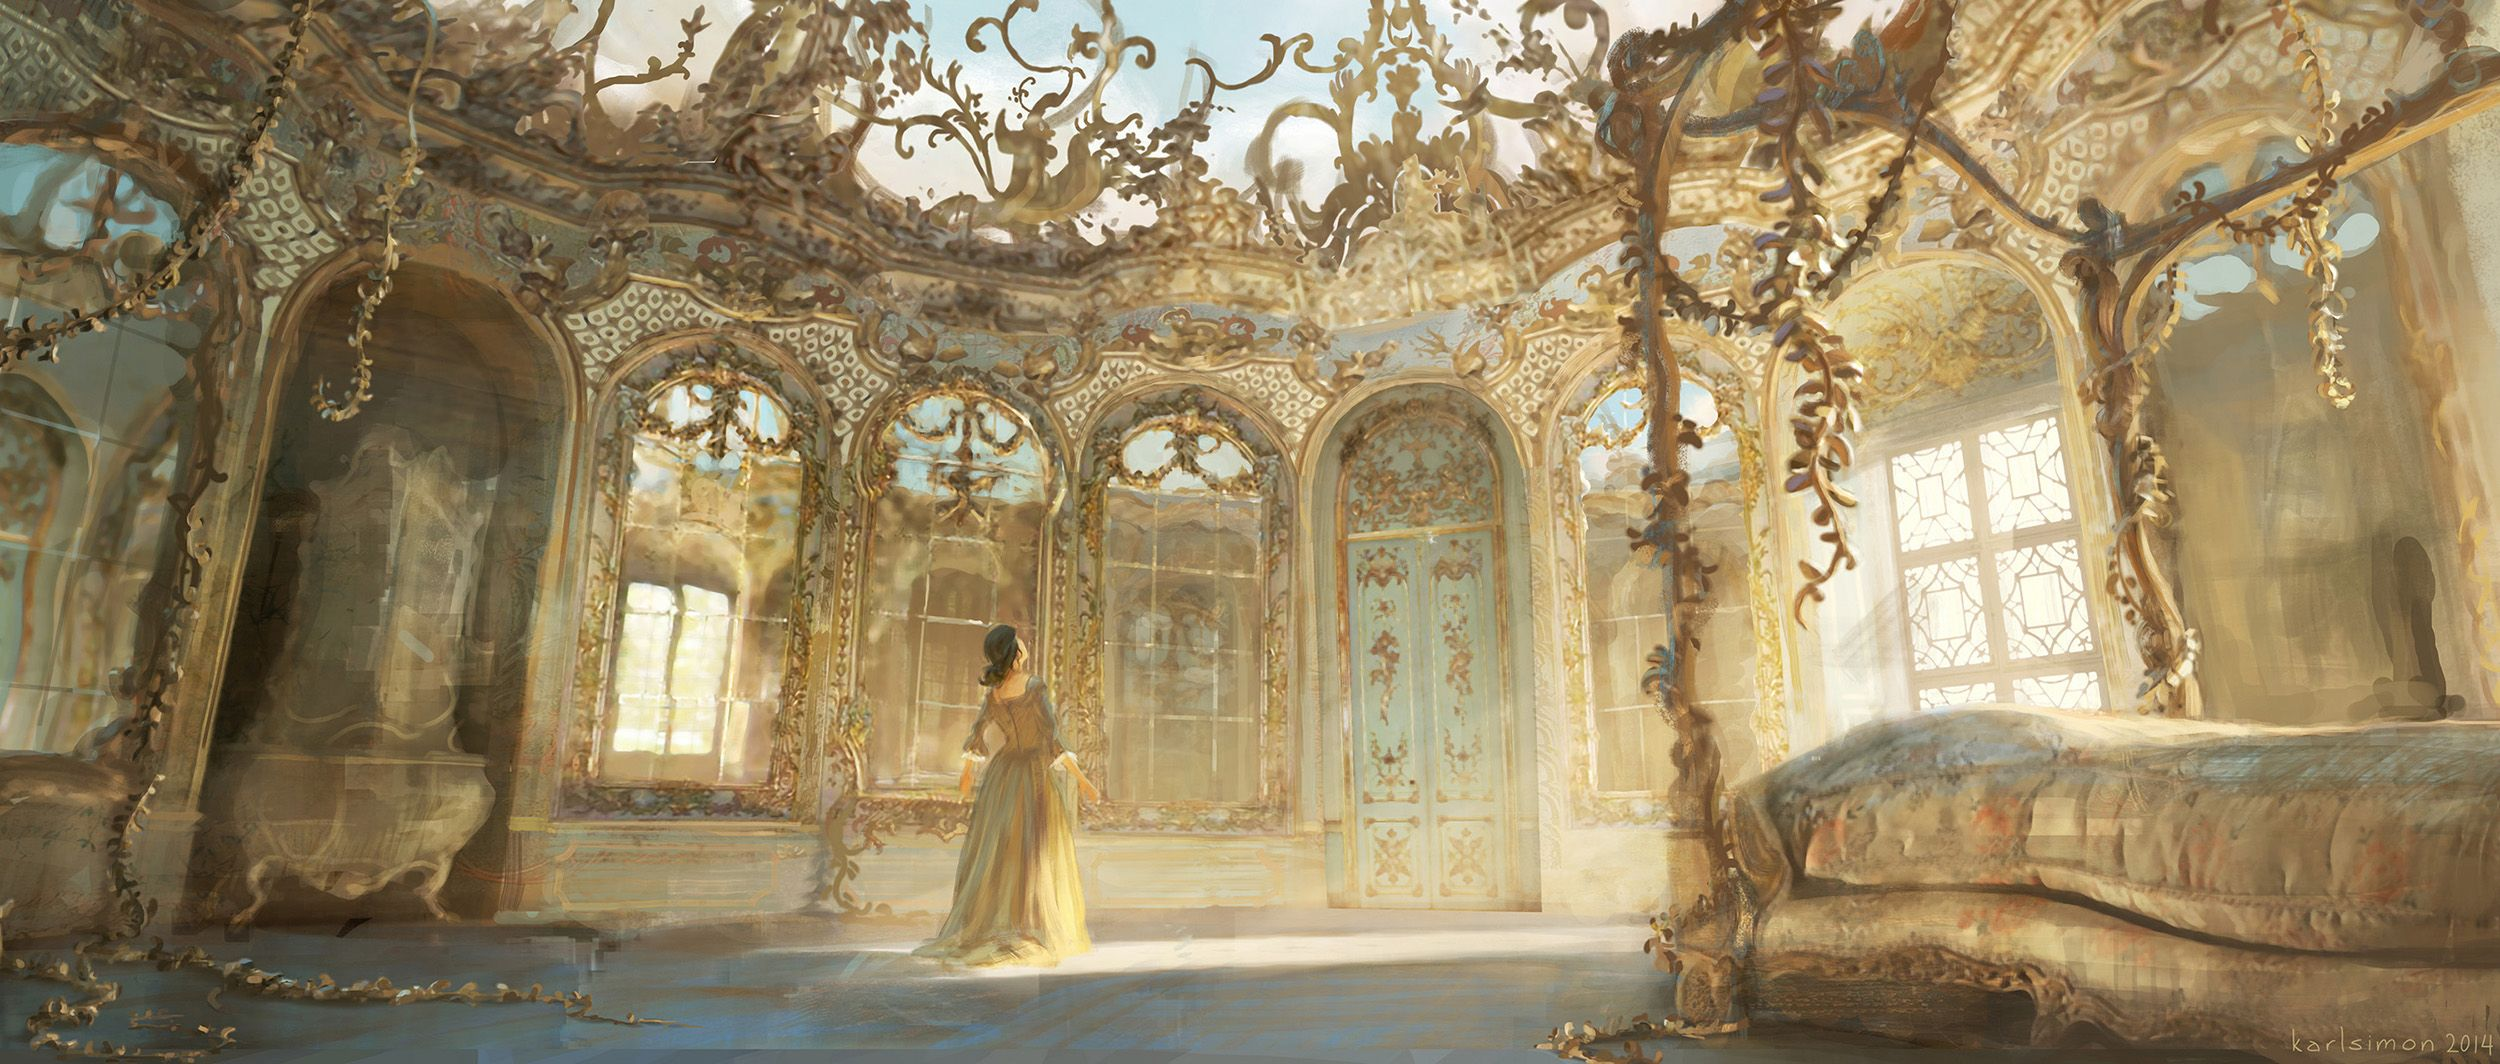 Best Beauty And The Beast Concept Art By Karl Simon Concept 400 x 300